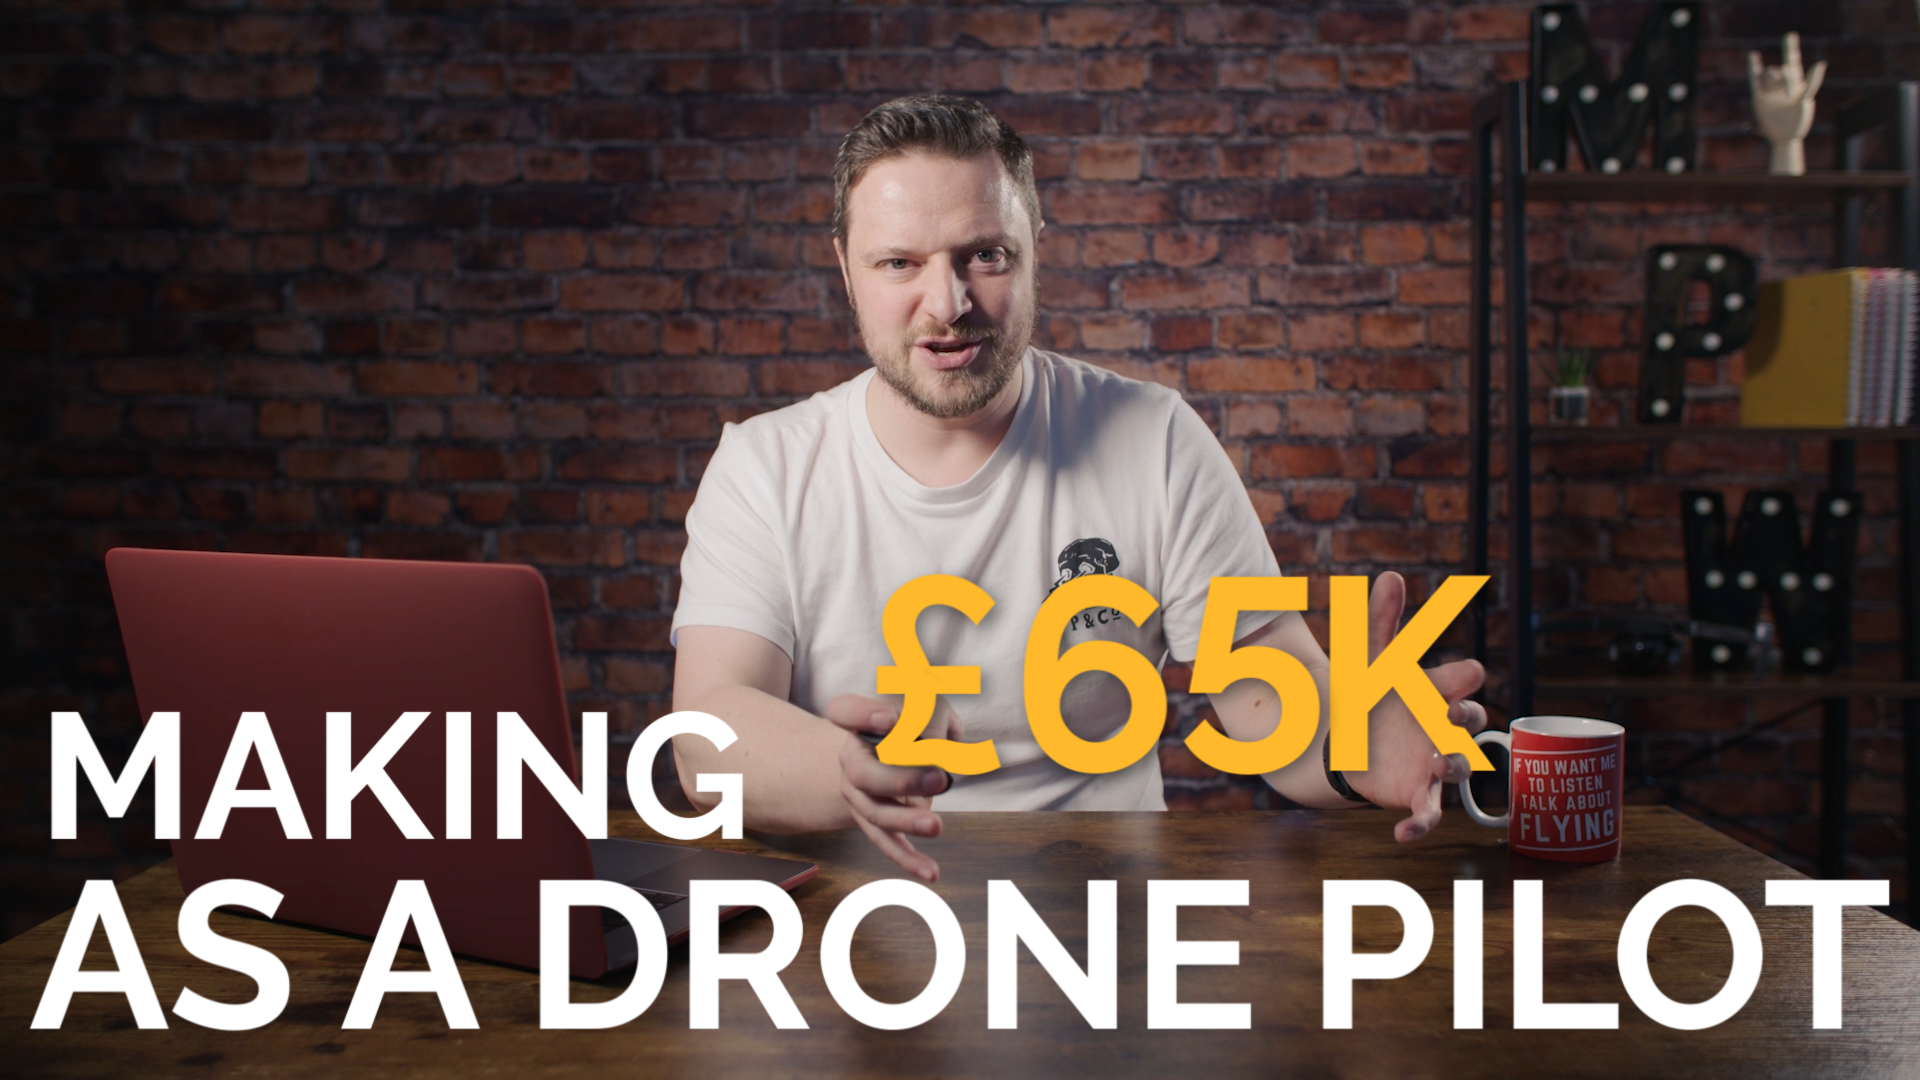 Can you REALLY earn £65k as a Professional Drone Pilot?